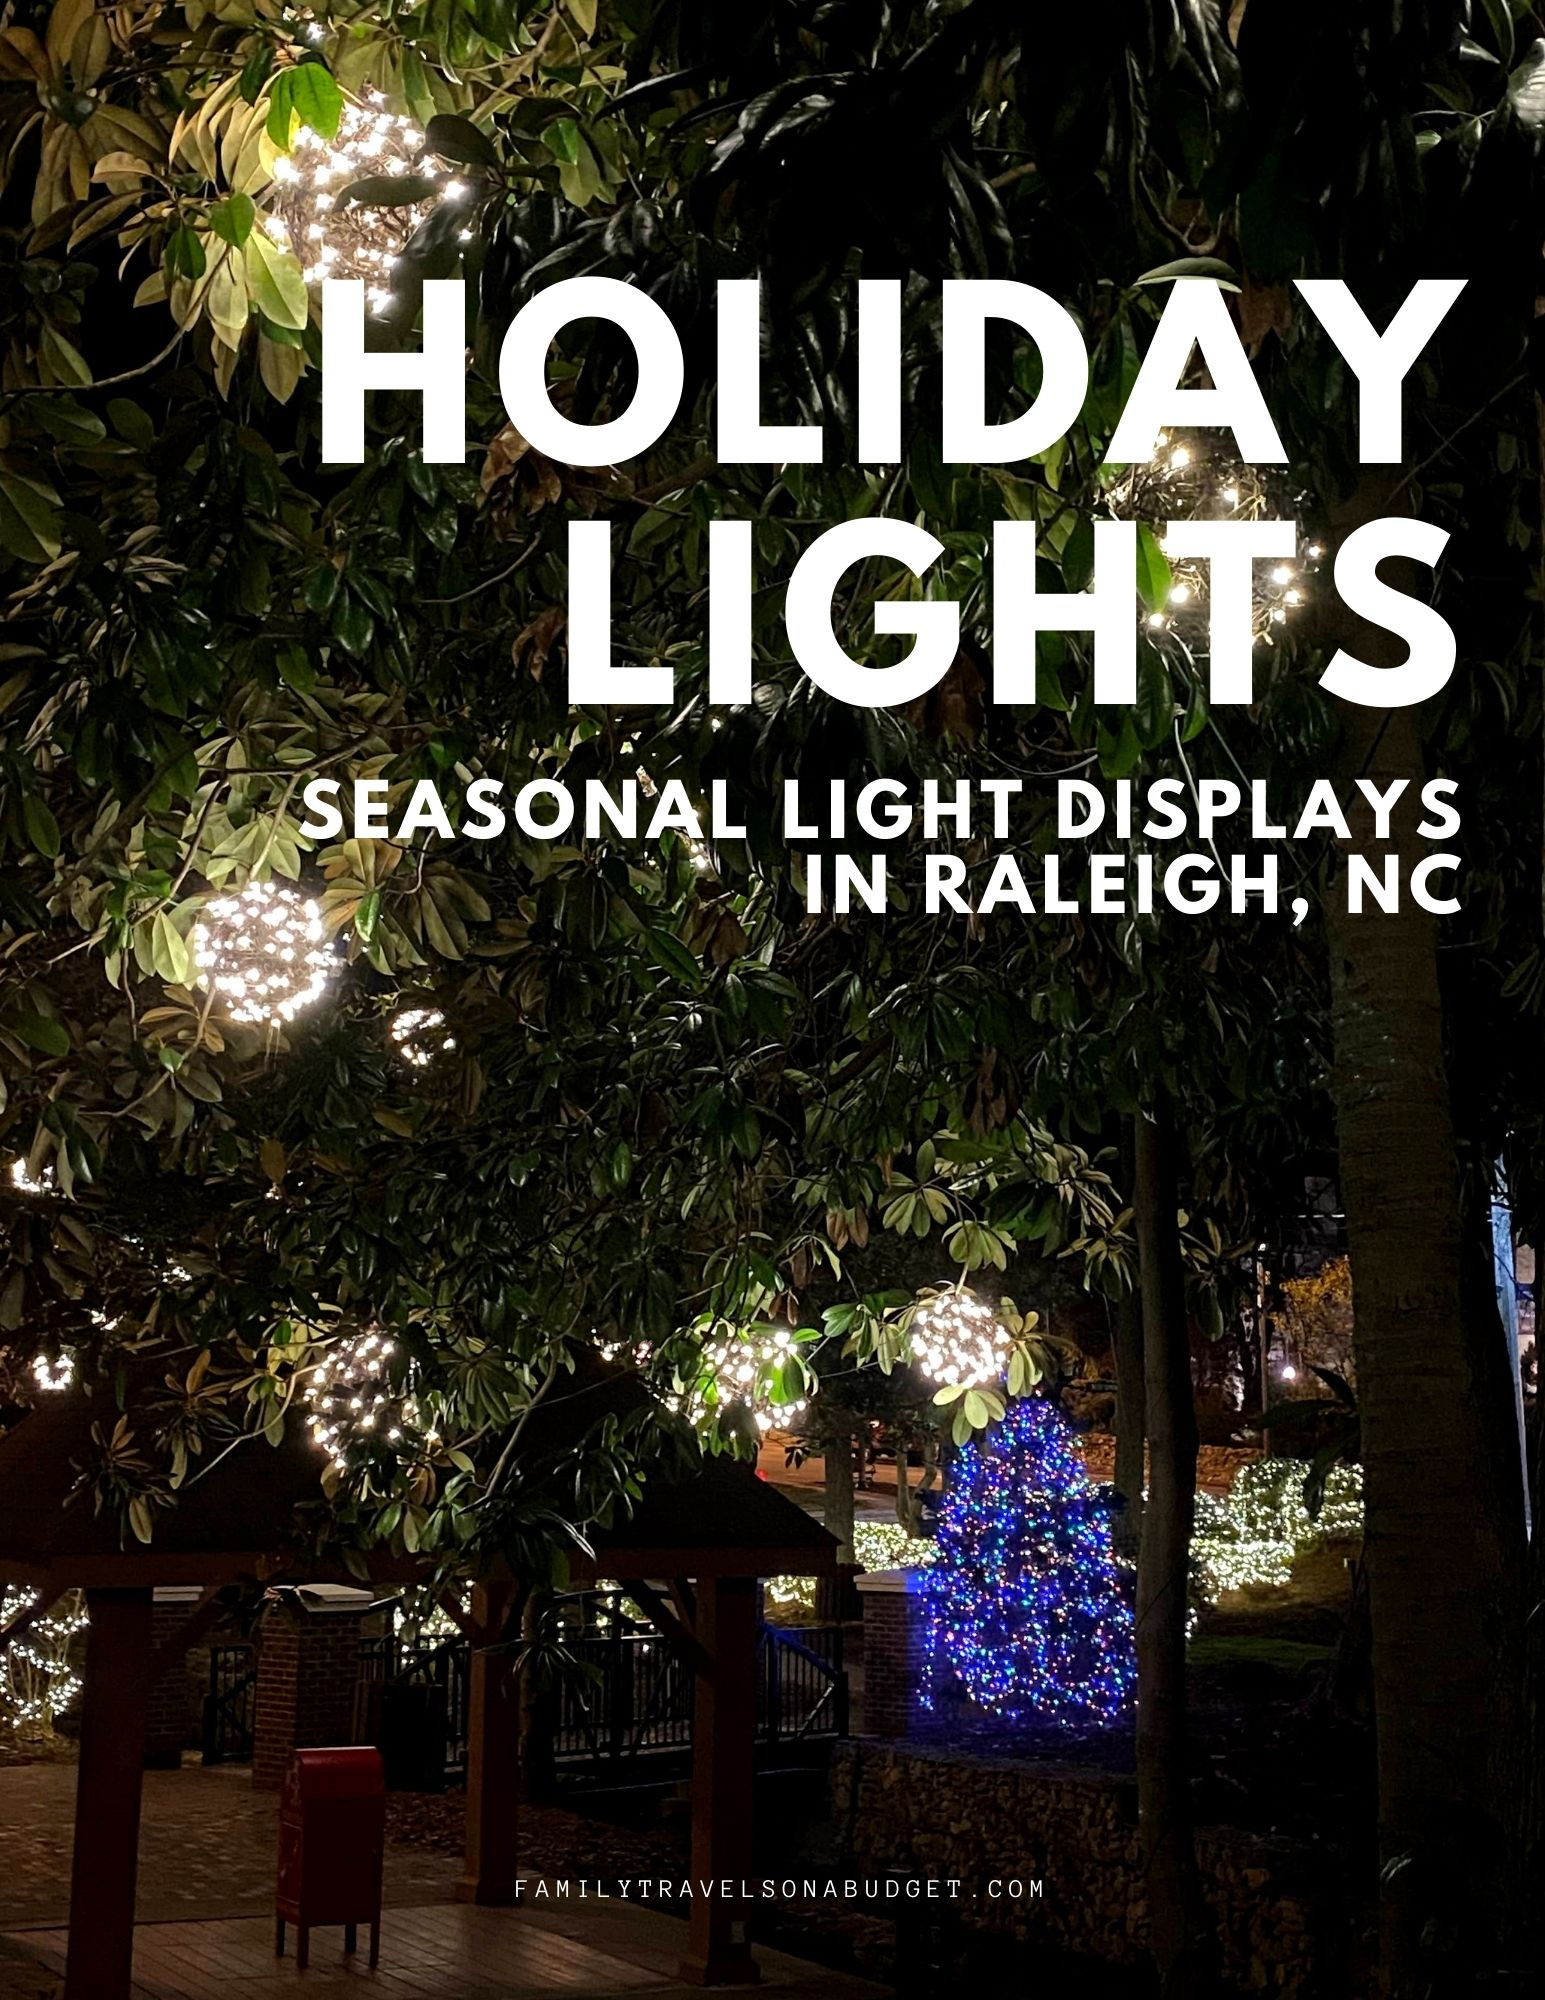 Holiday lights in the Triangle bring joy and fun for everyone! Local parks and holiday drive through displays bring joy to everyone. This list of holiday light displays in the Raleigh area include perennial favorites and newcomers like the display at Dorothea Dix Park. Family friendly holiday fun for everyone! Family friendly. Christmas ideas. Family Christmas. Things to do in Raleigh. via @karendawkins